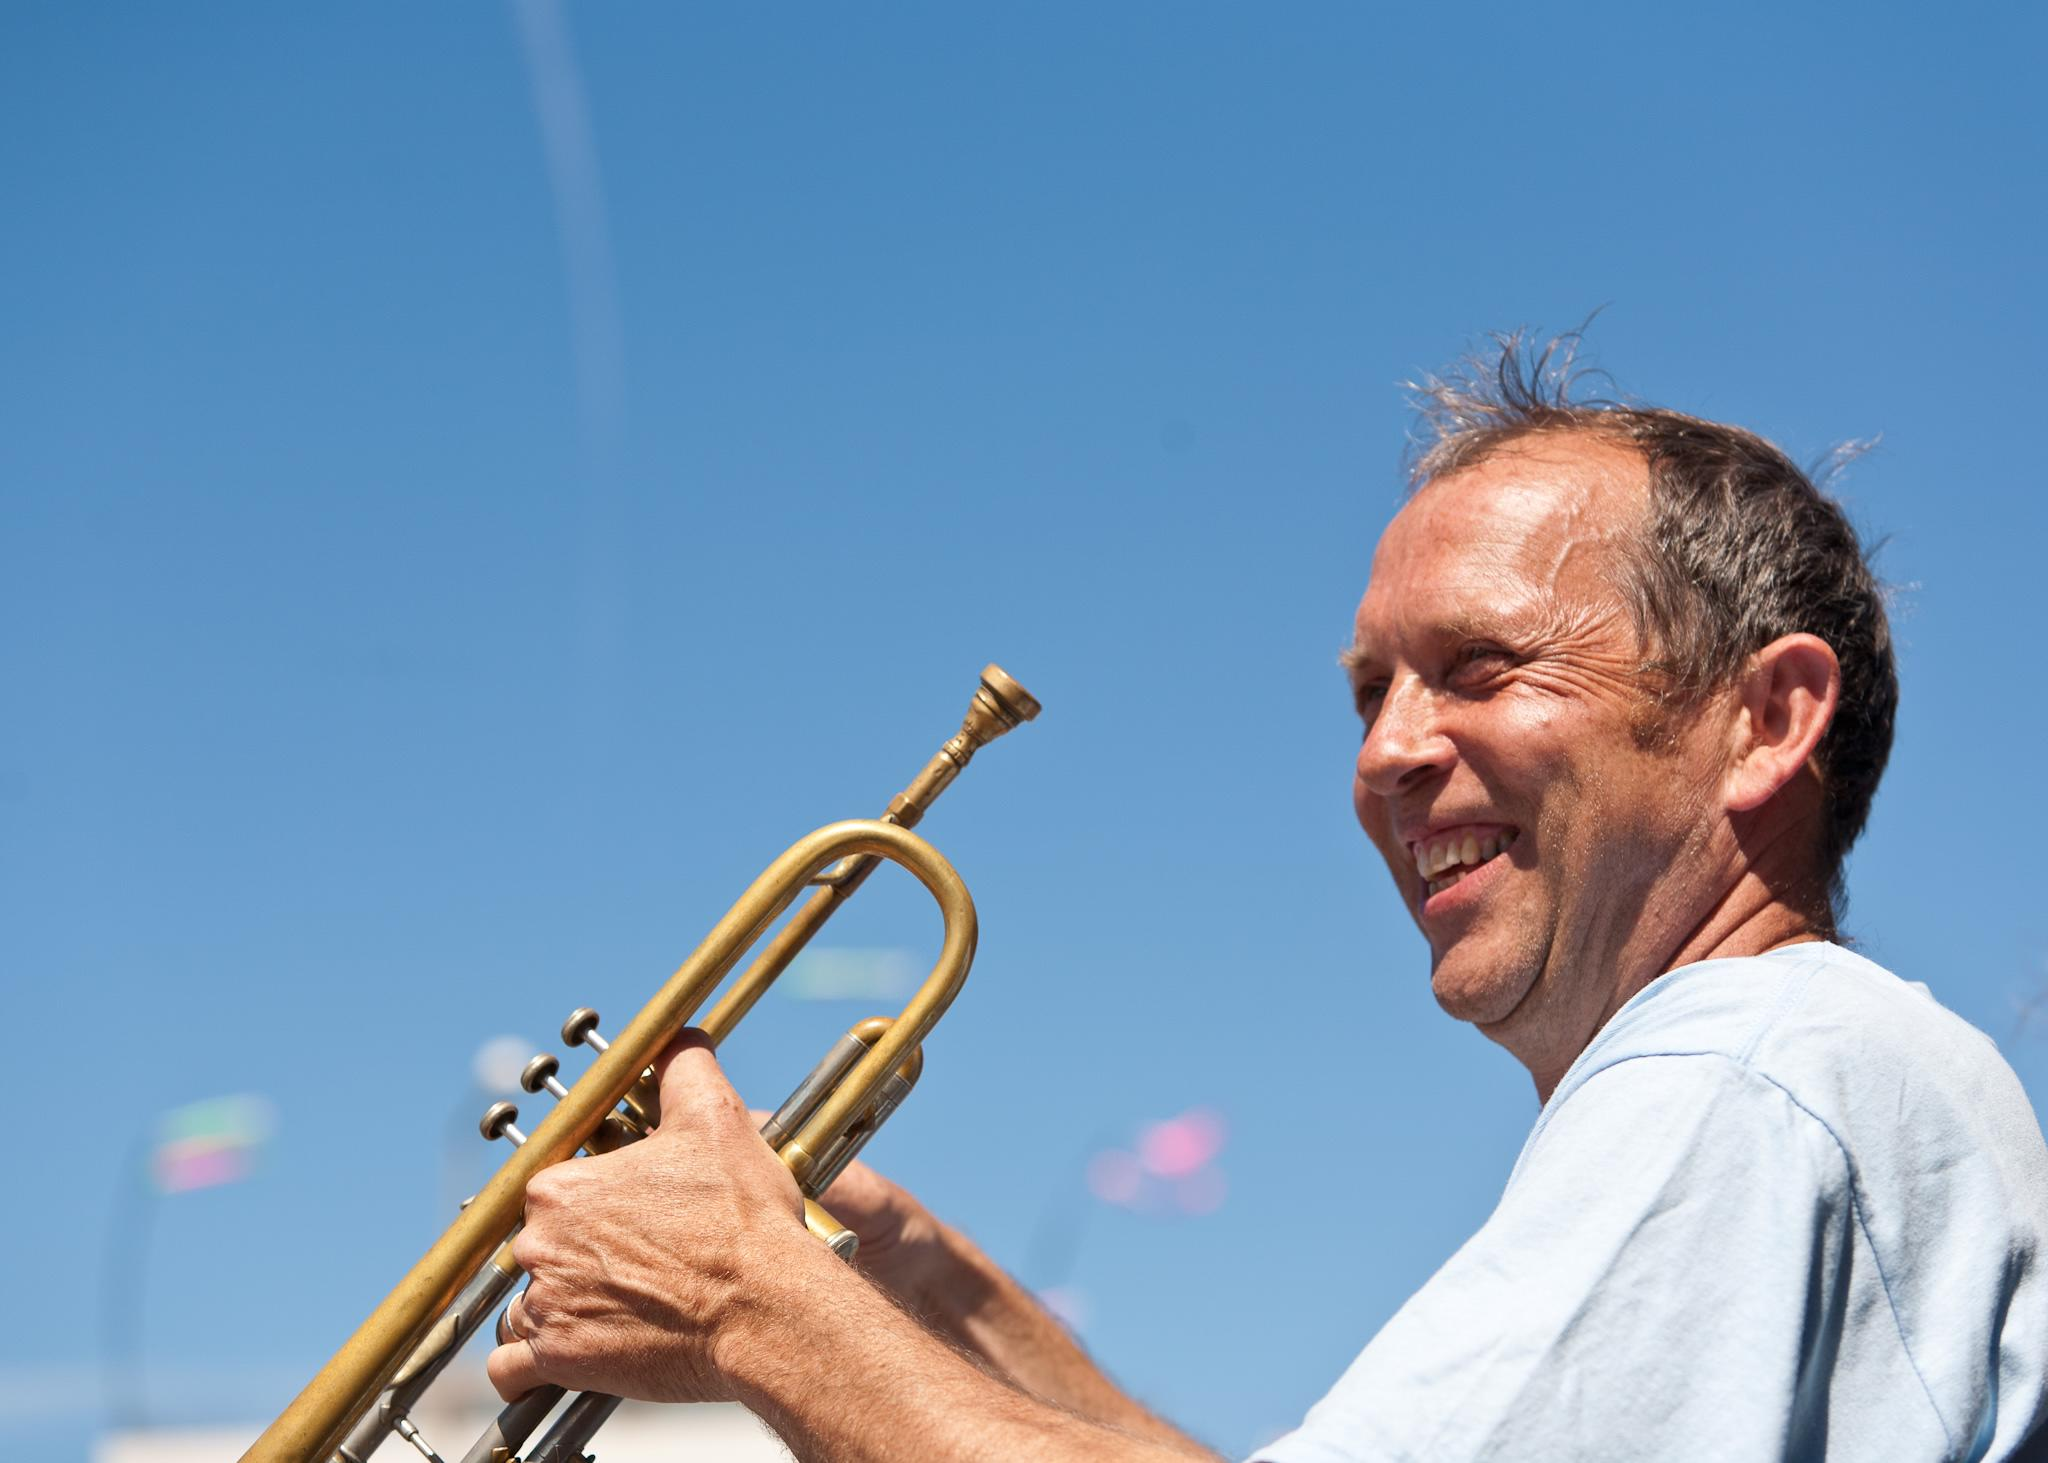 Peter Moser with his trumpet, co chair of the ISME CMA